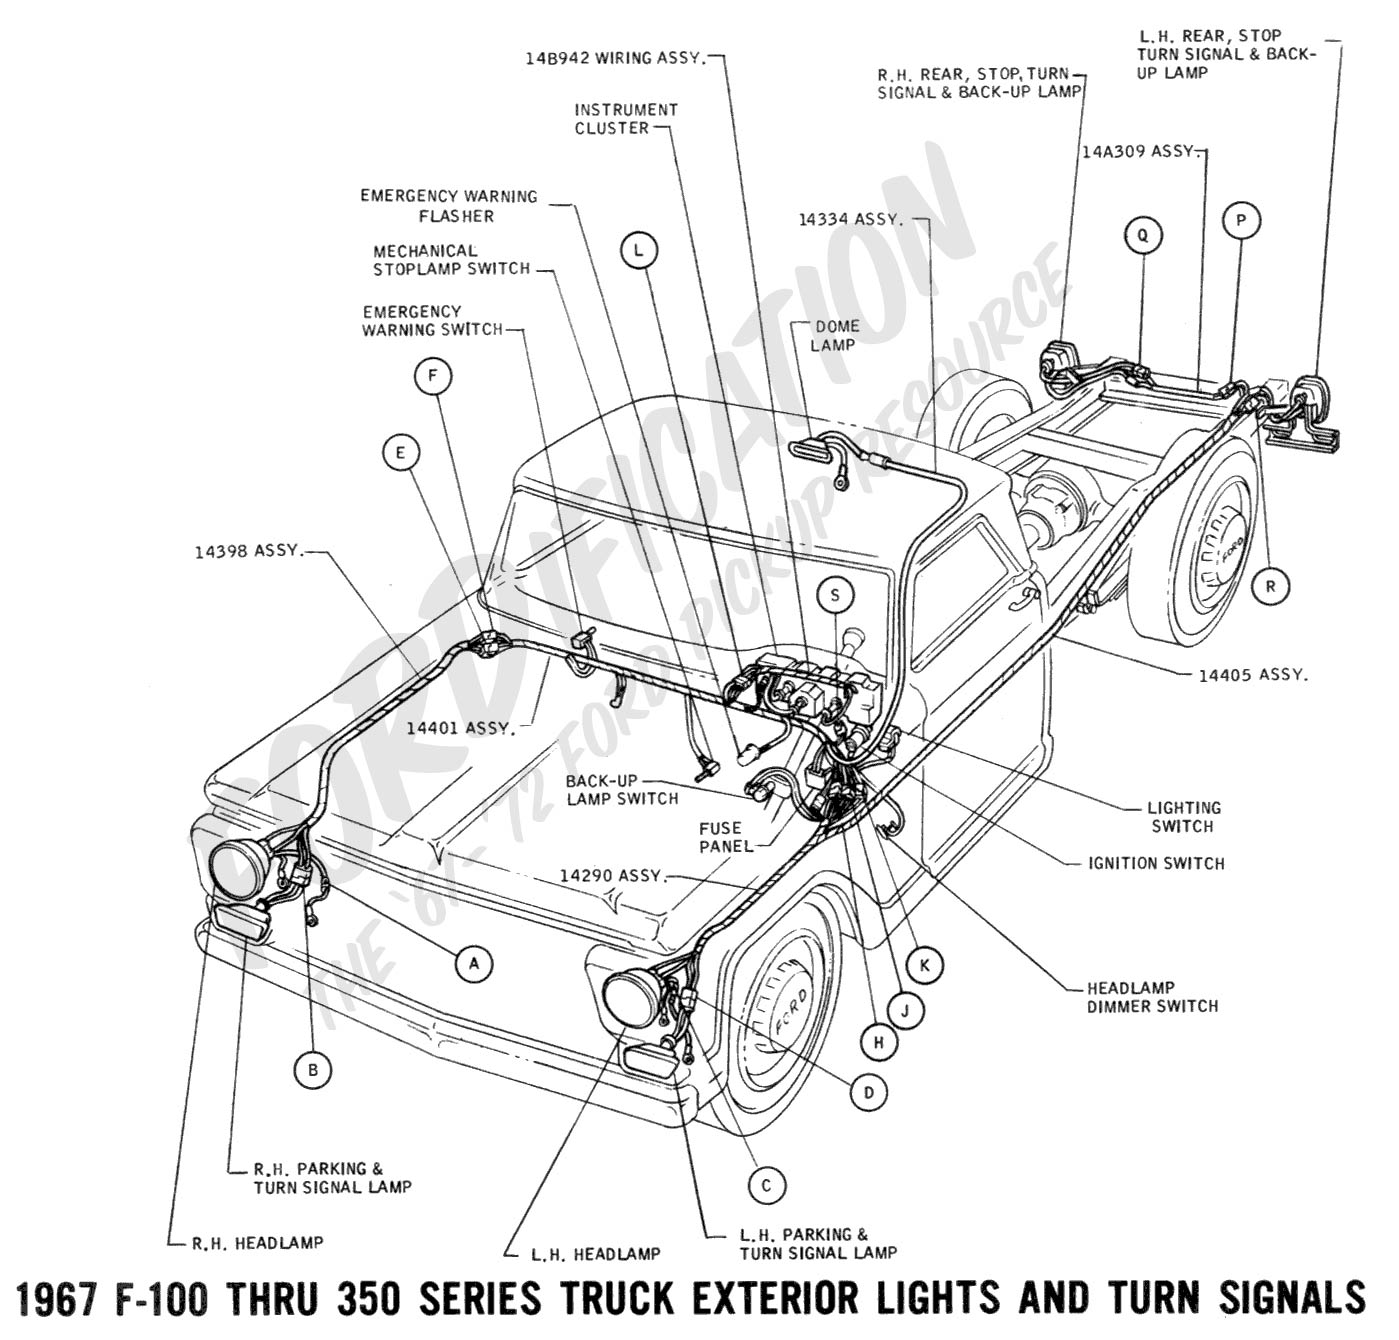 hight resolution of 1998 ford f150 xlt fuel tank diagram wiring diagram 1989 ford f 150 xlt lariaat fuel